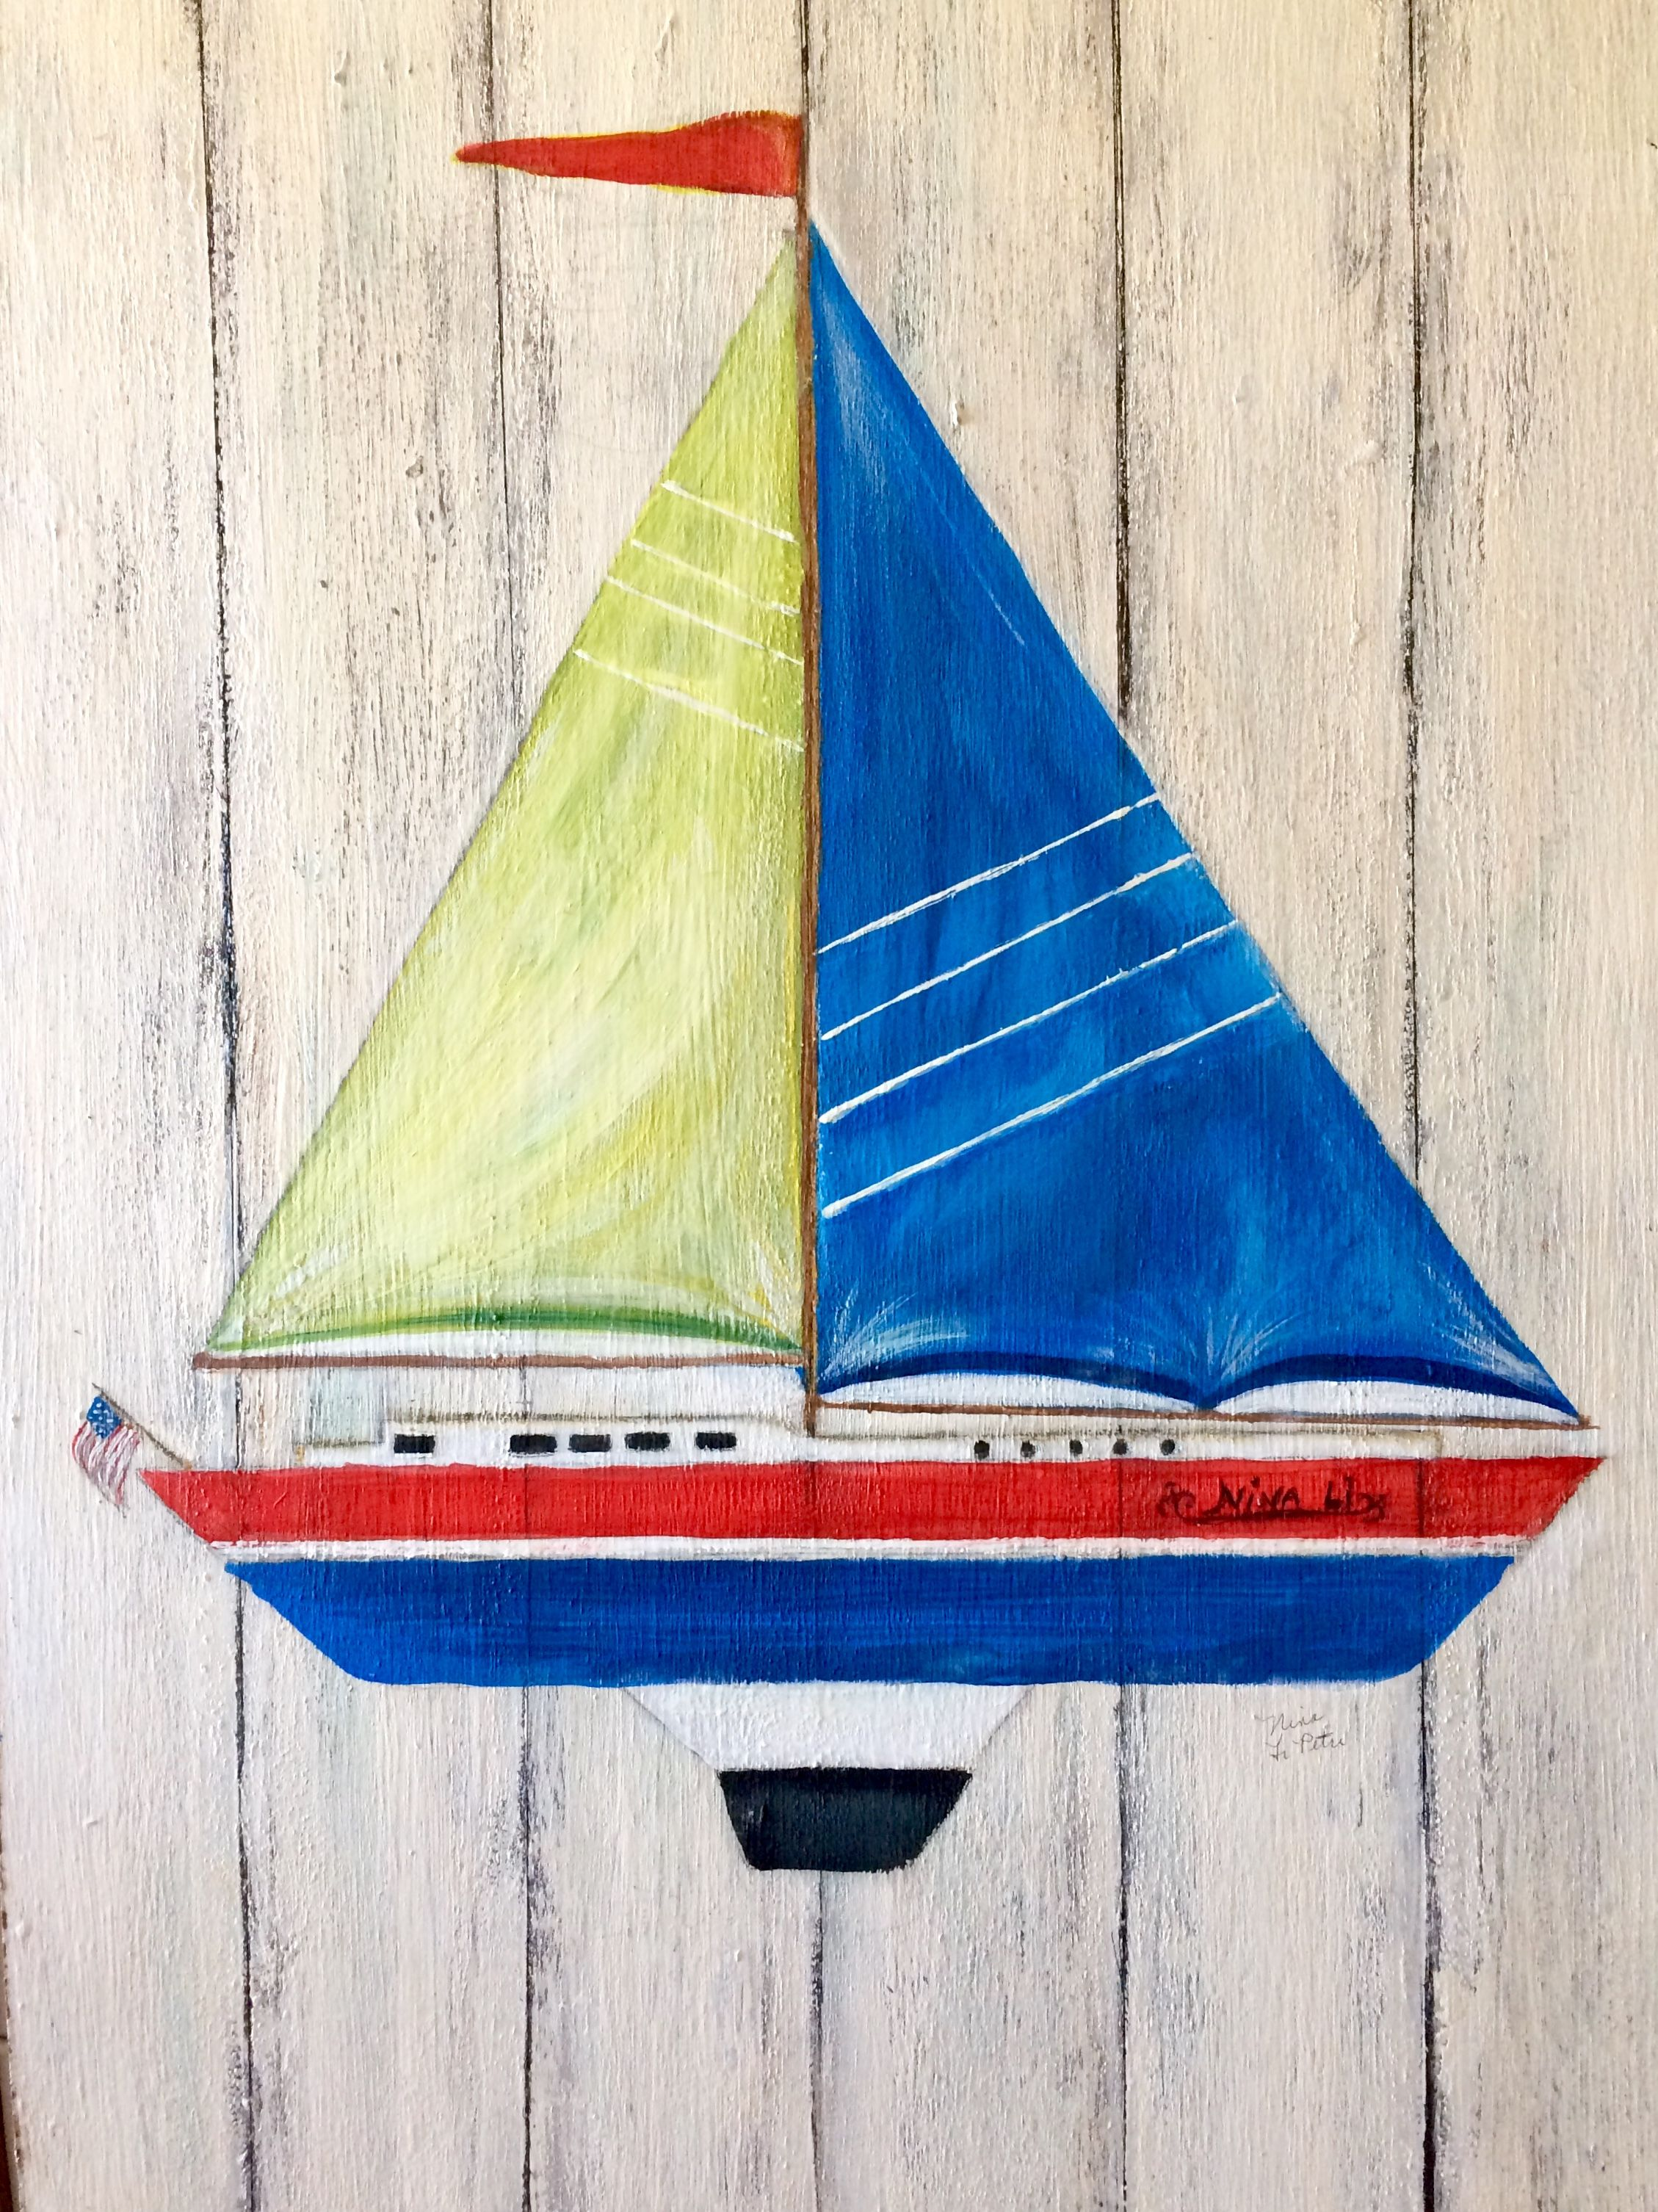 Sailboat With Images My Drawings Painting Art